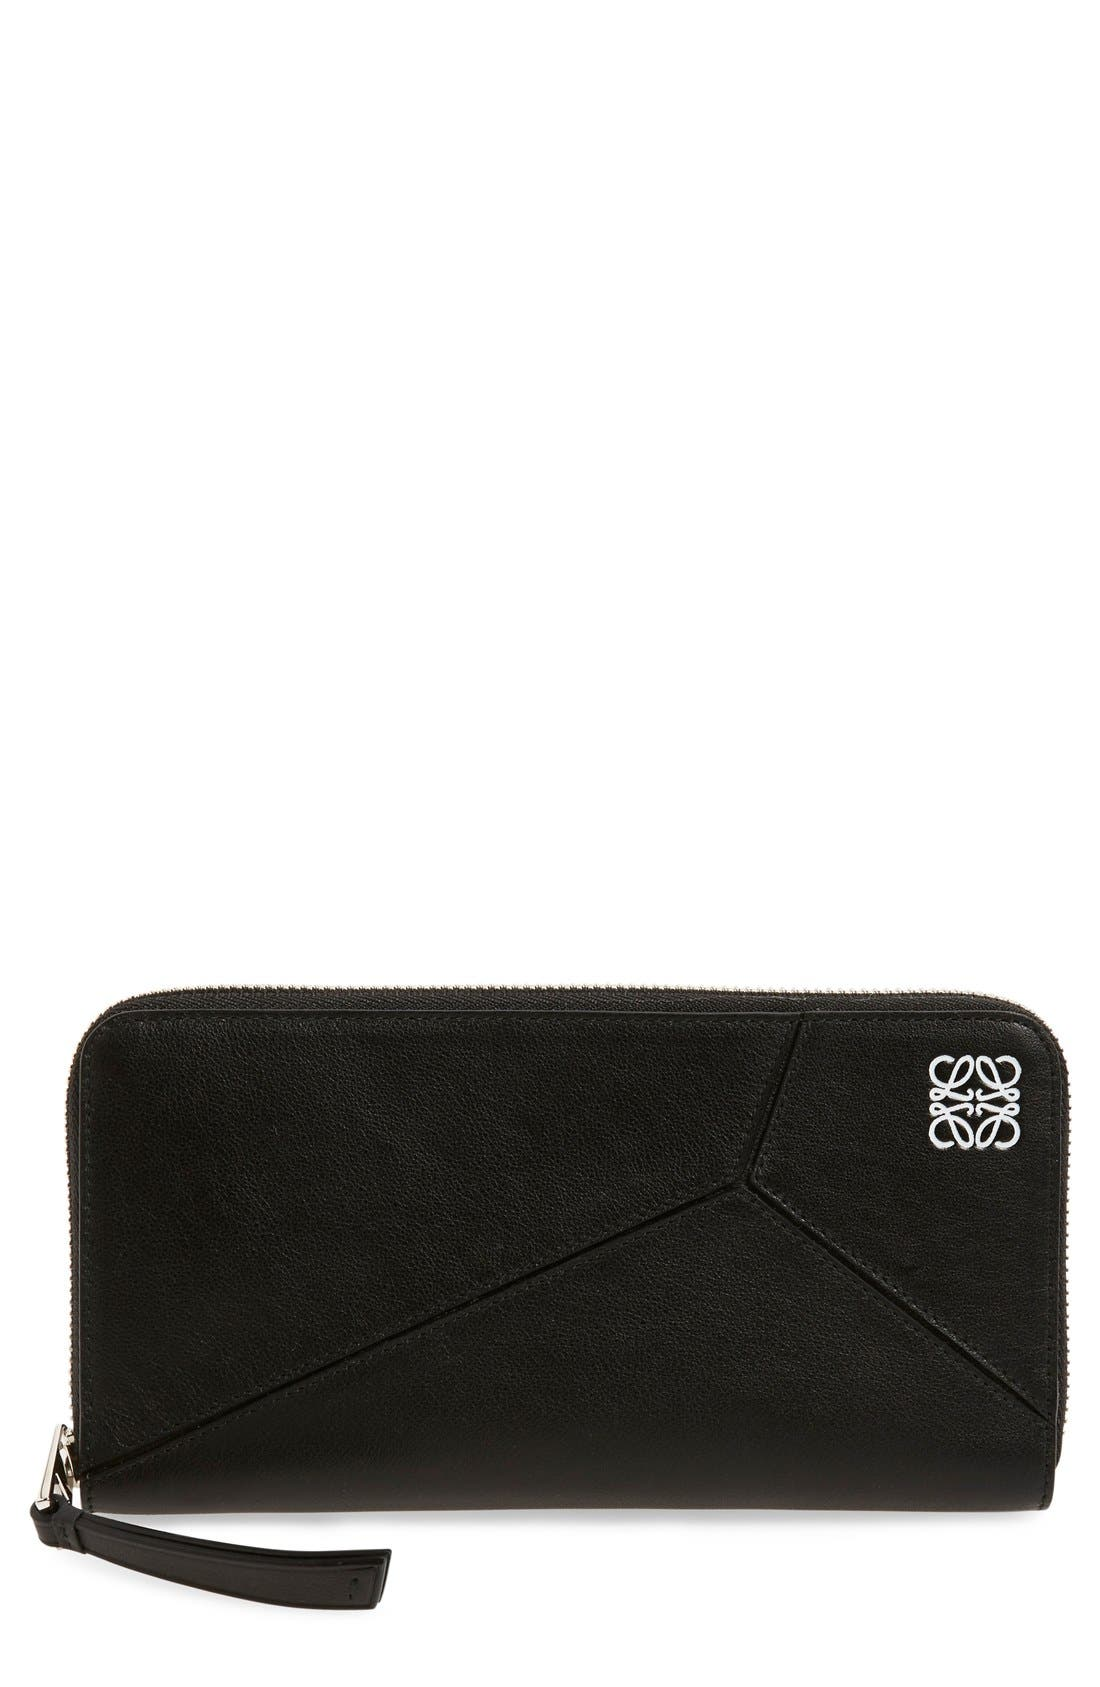 Loewe 'Puzzle' Leather Zip Around Wallet